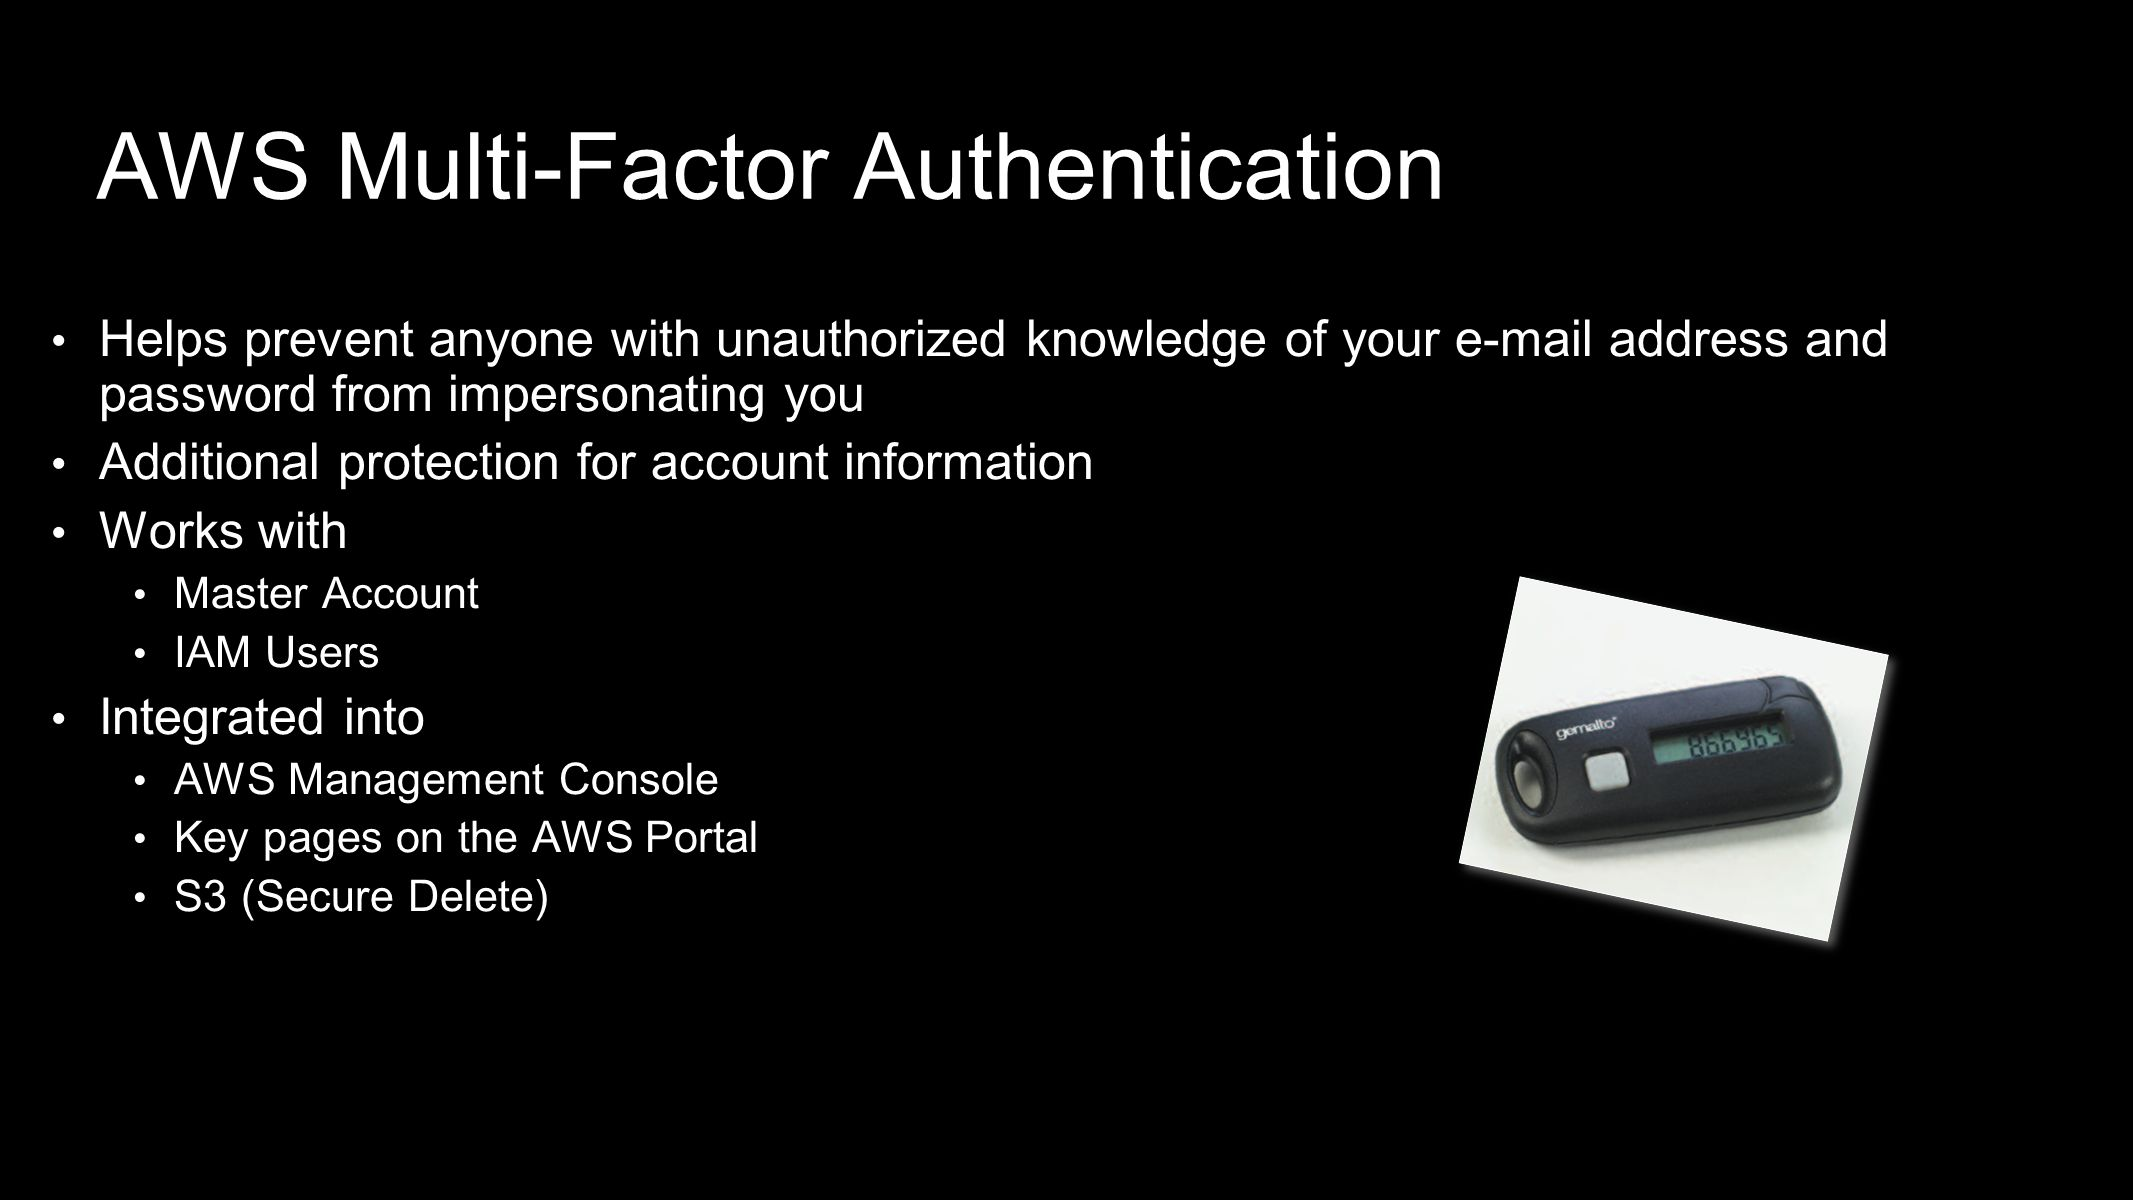 AWS Multi-Factor Authentication